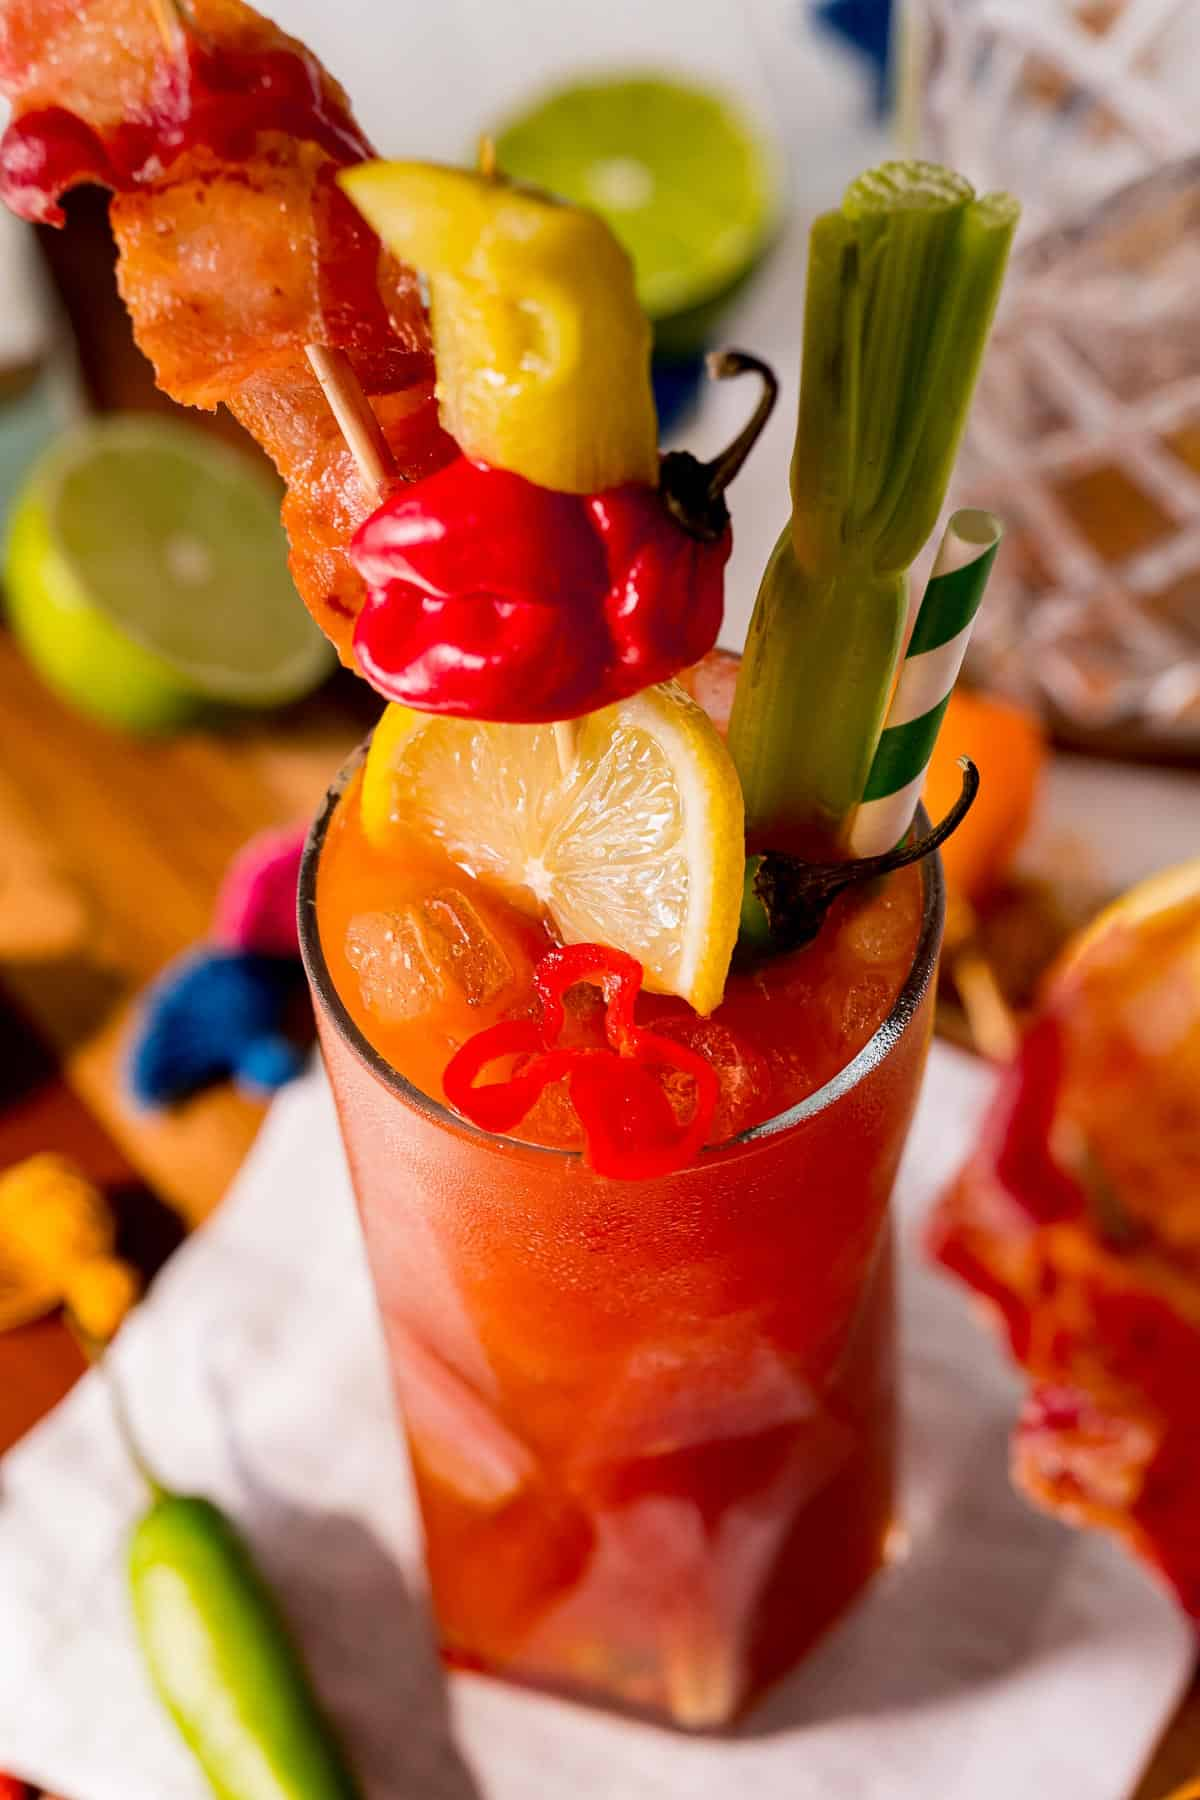 Close up overhead view of a heavily garnished bloody mary style cocktail.